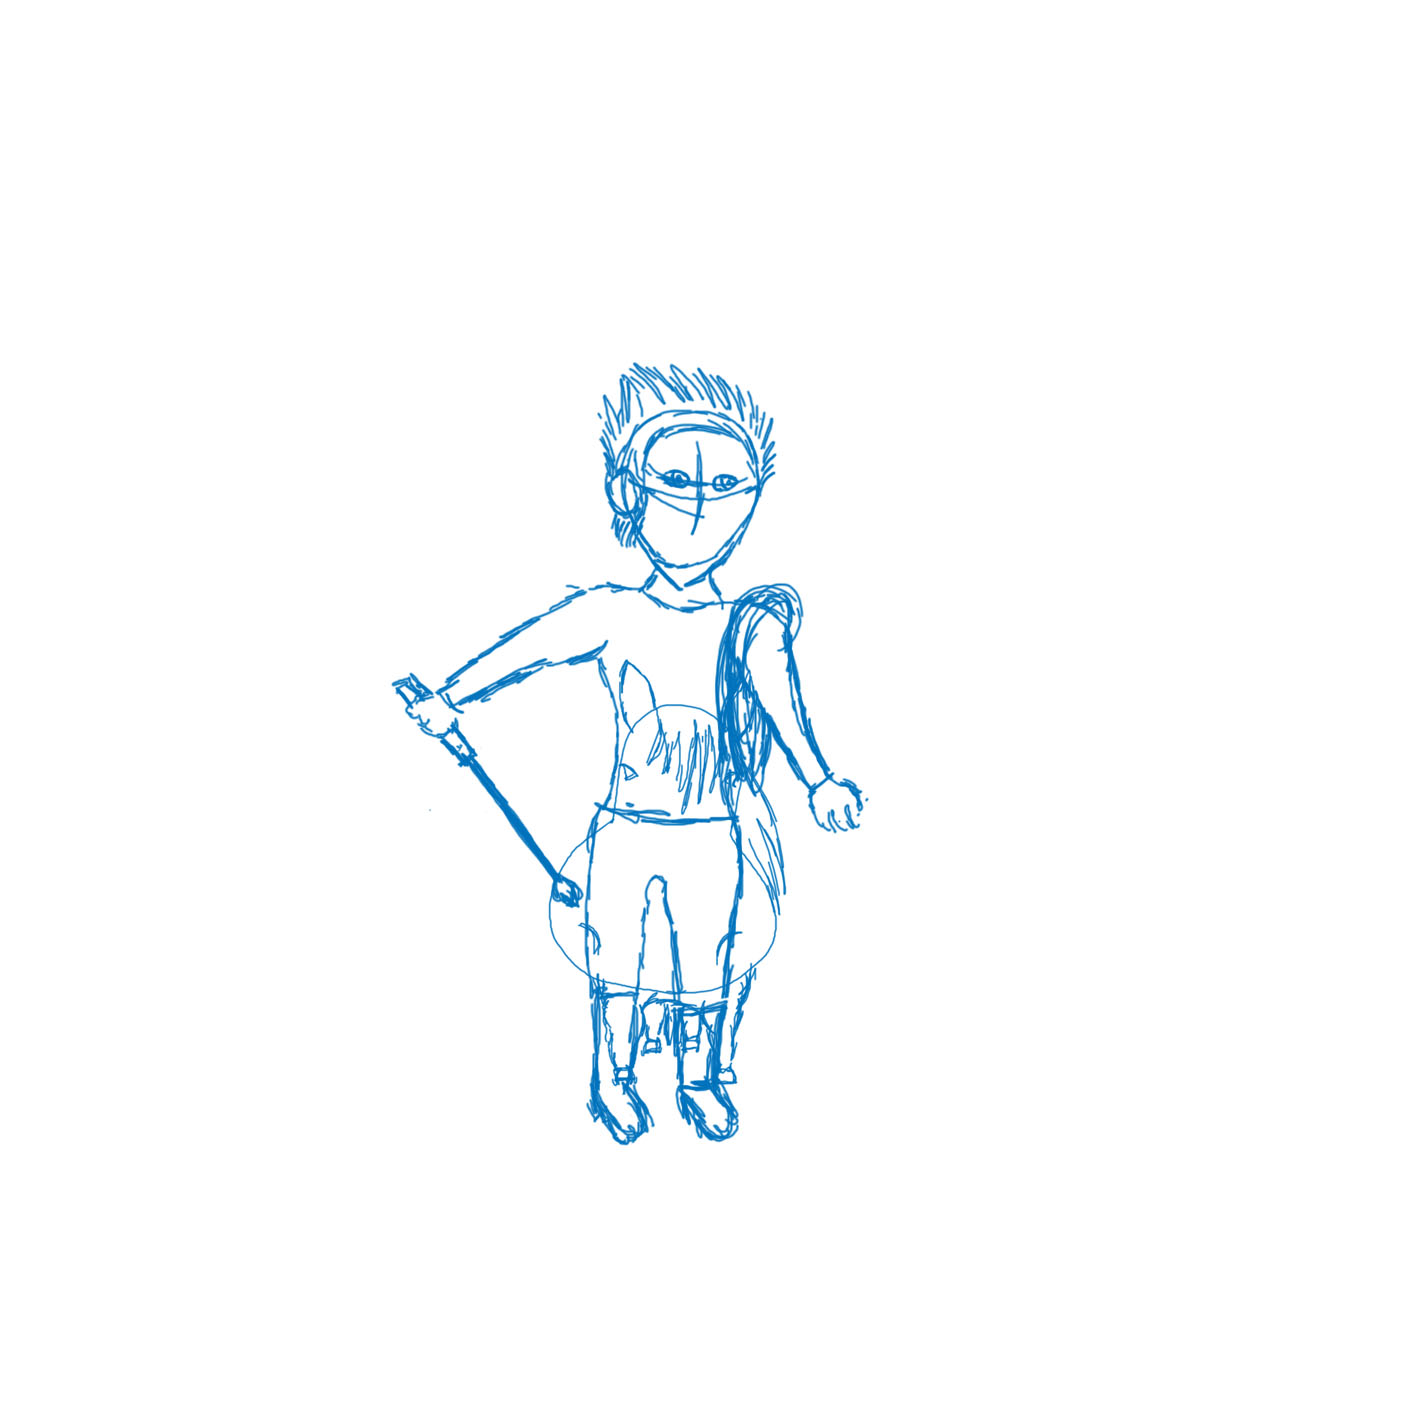 Character Design Draw With Jazza : Sketch for draw with jazza by vildedavidsen on newgrounds